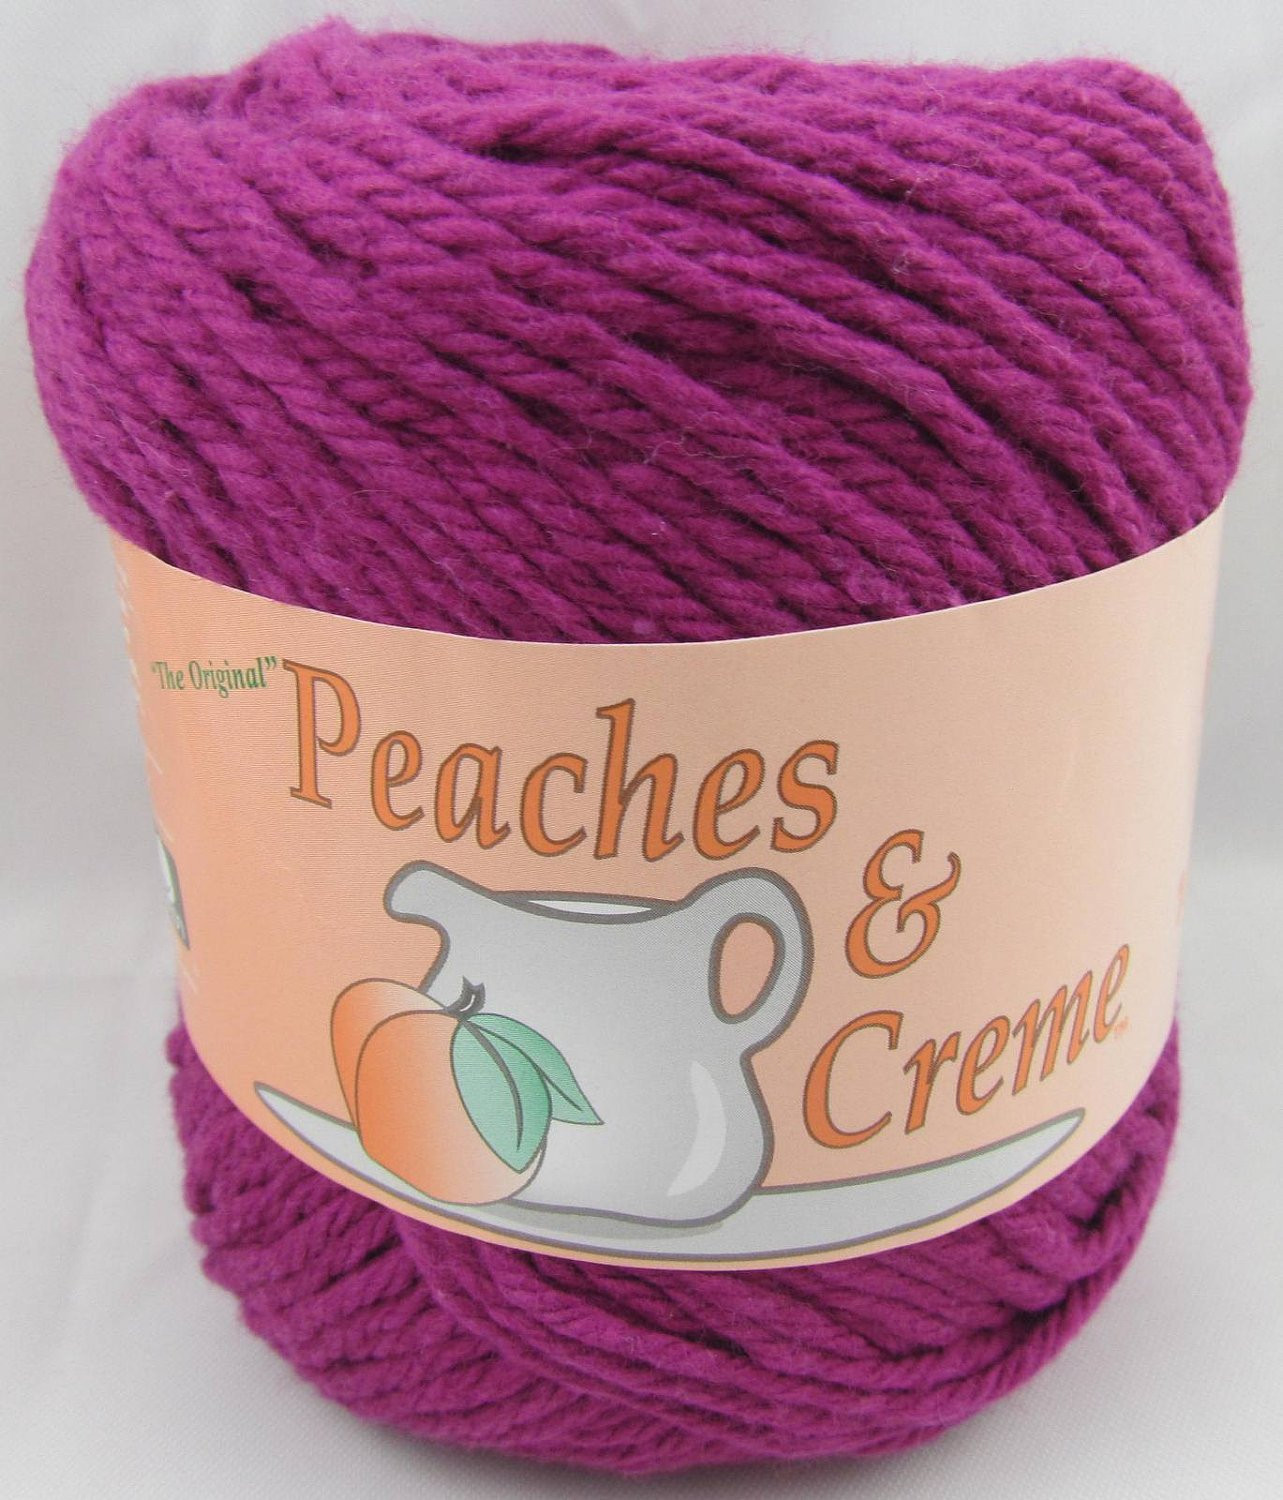 Peaches and Cream Cotton Yarn Elegant Abbey Rose Peaches & Creme Yarn 1 Ball Of Brilliant 43 Pictures Peaches and Cream Cotton Yarn